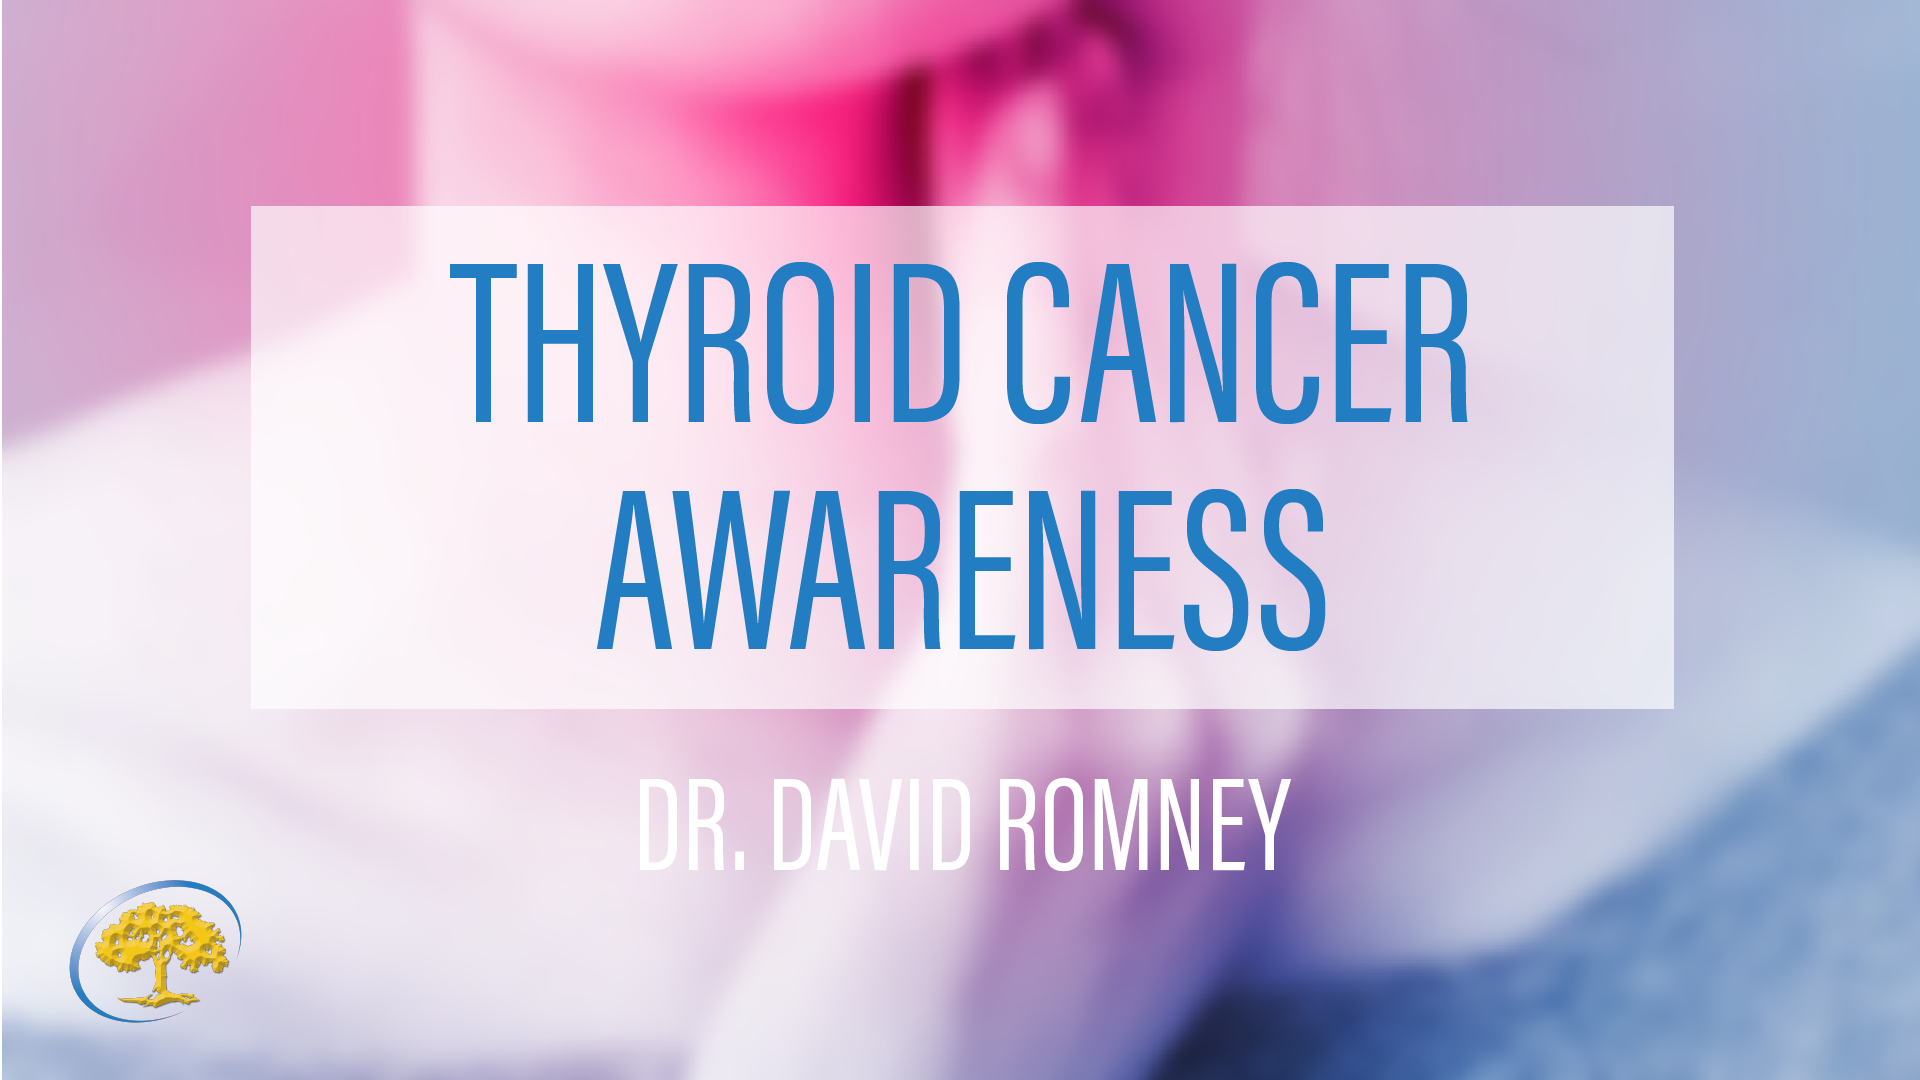 Dr. Davis Romney Thyroid Cancer Awareness